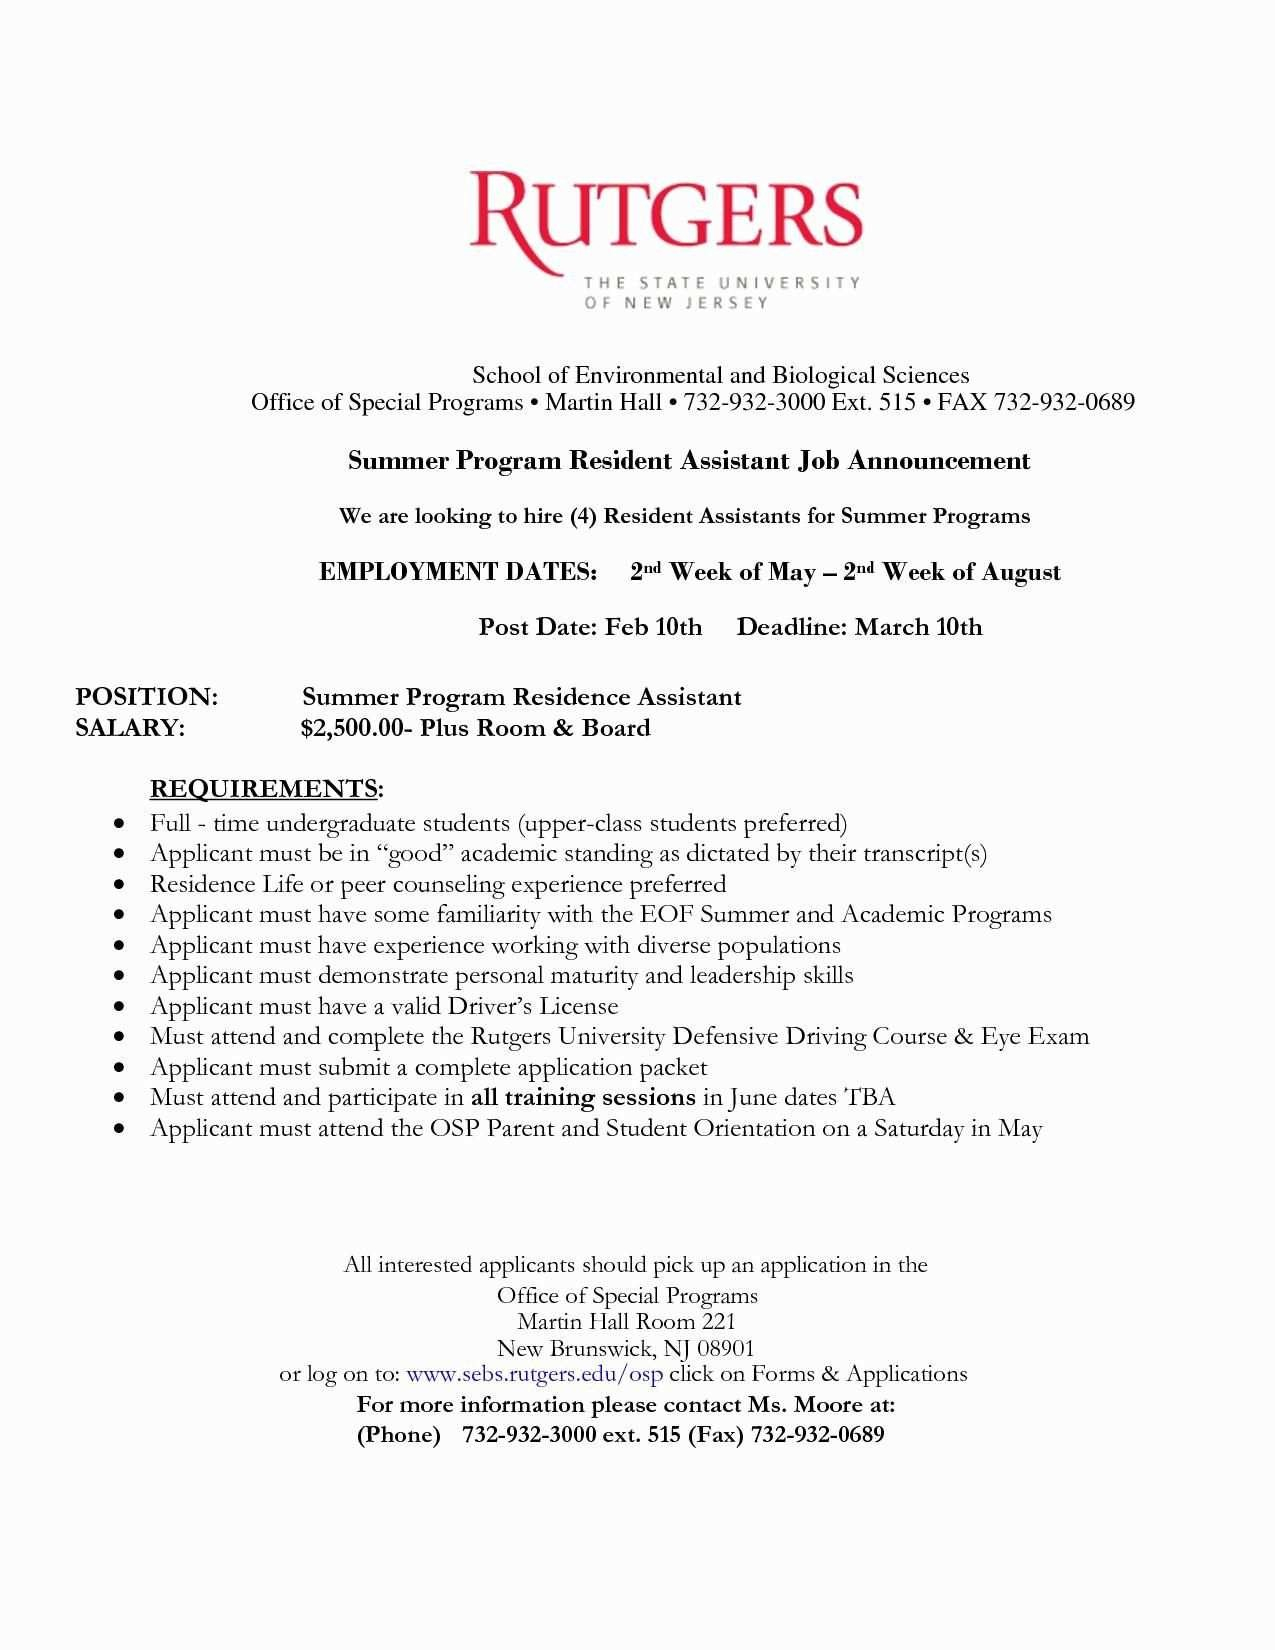 rutgers resume template Collection-Pages Resume Template New ¢Ë†Å¡ 2 Page Resume Examples Lovely Sample Profile For Resume Resume 15-a